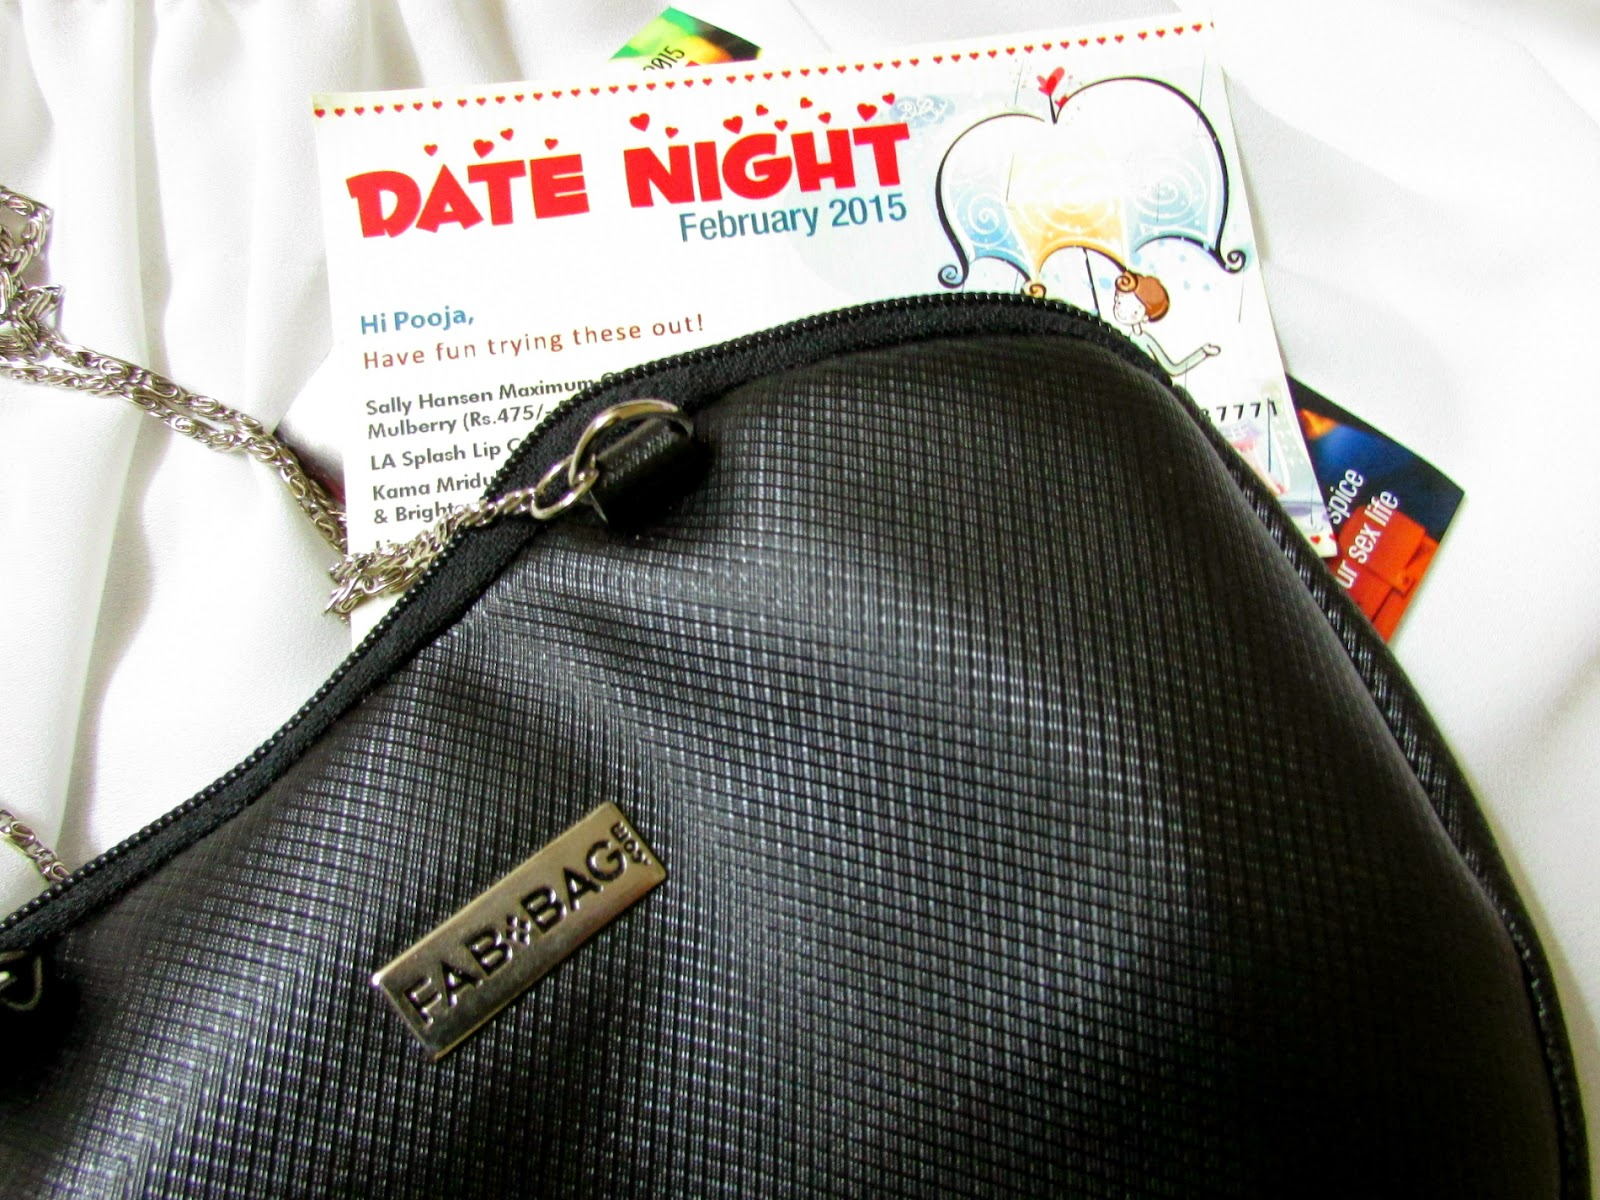 Fab Bag Dicount coupon,  Fab Bag, Fab Bag india, Fab Bag subscription, face, Febuaray Fab Bag Review, Livon Moroccan Silk Serum, LA Splash Lip Couture Lipstick Lipstick in Innocent Vixen, Sally Hansen Maximum Growth plus Nourishing Nail Color in Tender Mulberry, Karma Mridul Soap free Face Cleanser, Kama Ayurveda Rejuvenating and brightening Ayurvedic Night Cream, beauty , fashion,beauty and fashion,beauty blog, fashion blog , indian beauty blog,indian fashion blog, beauty and fashion blog, indian beauty and fashion blog, indian bloggers, indian beauty bloggers, indian fashion bloggers,indian bloggers online, top 10 indian bloggers, top indian bloggers,top 10 fashion bloggers, indian bloggers on blogspot,home remedies, how to